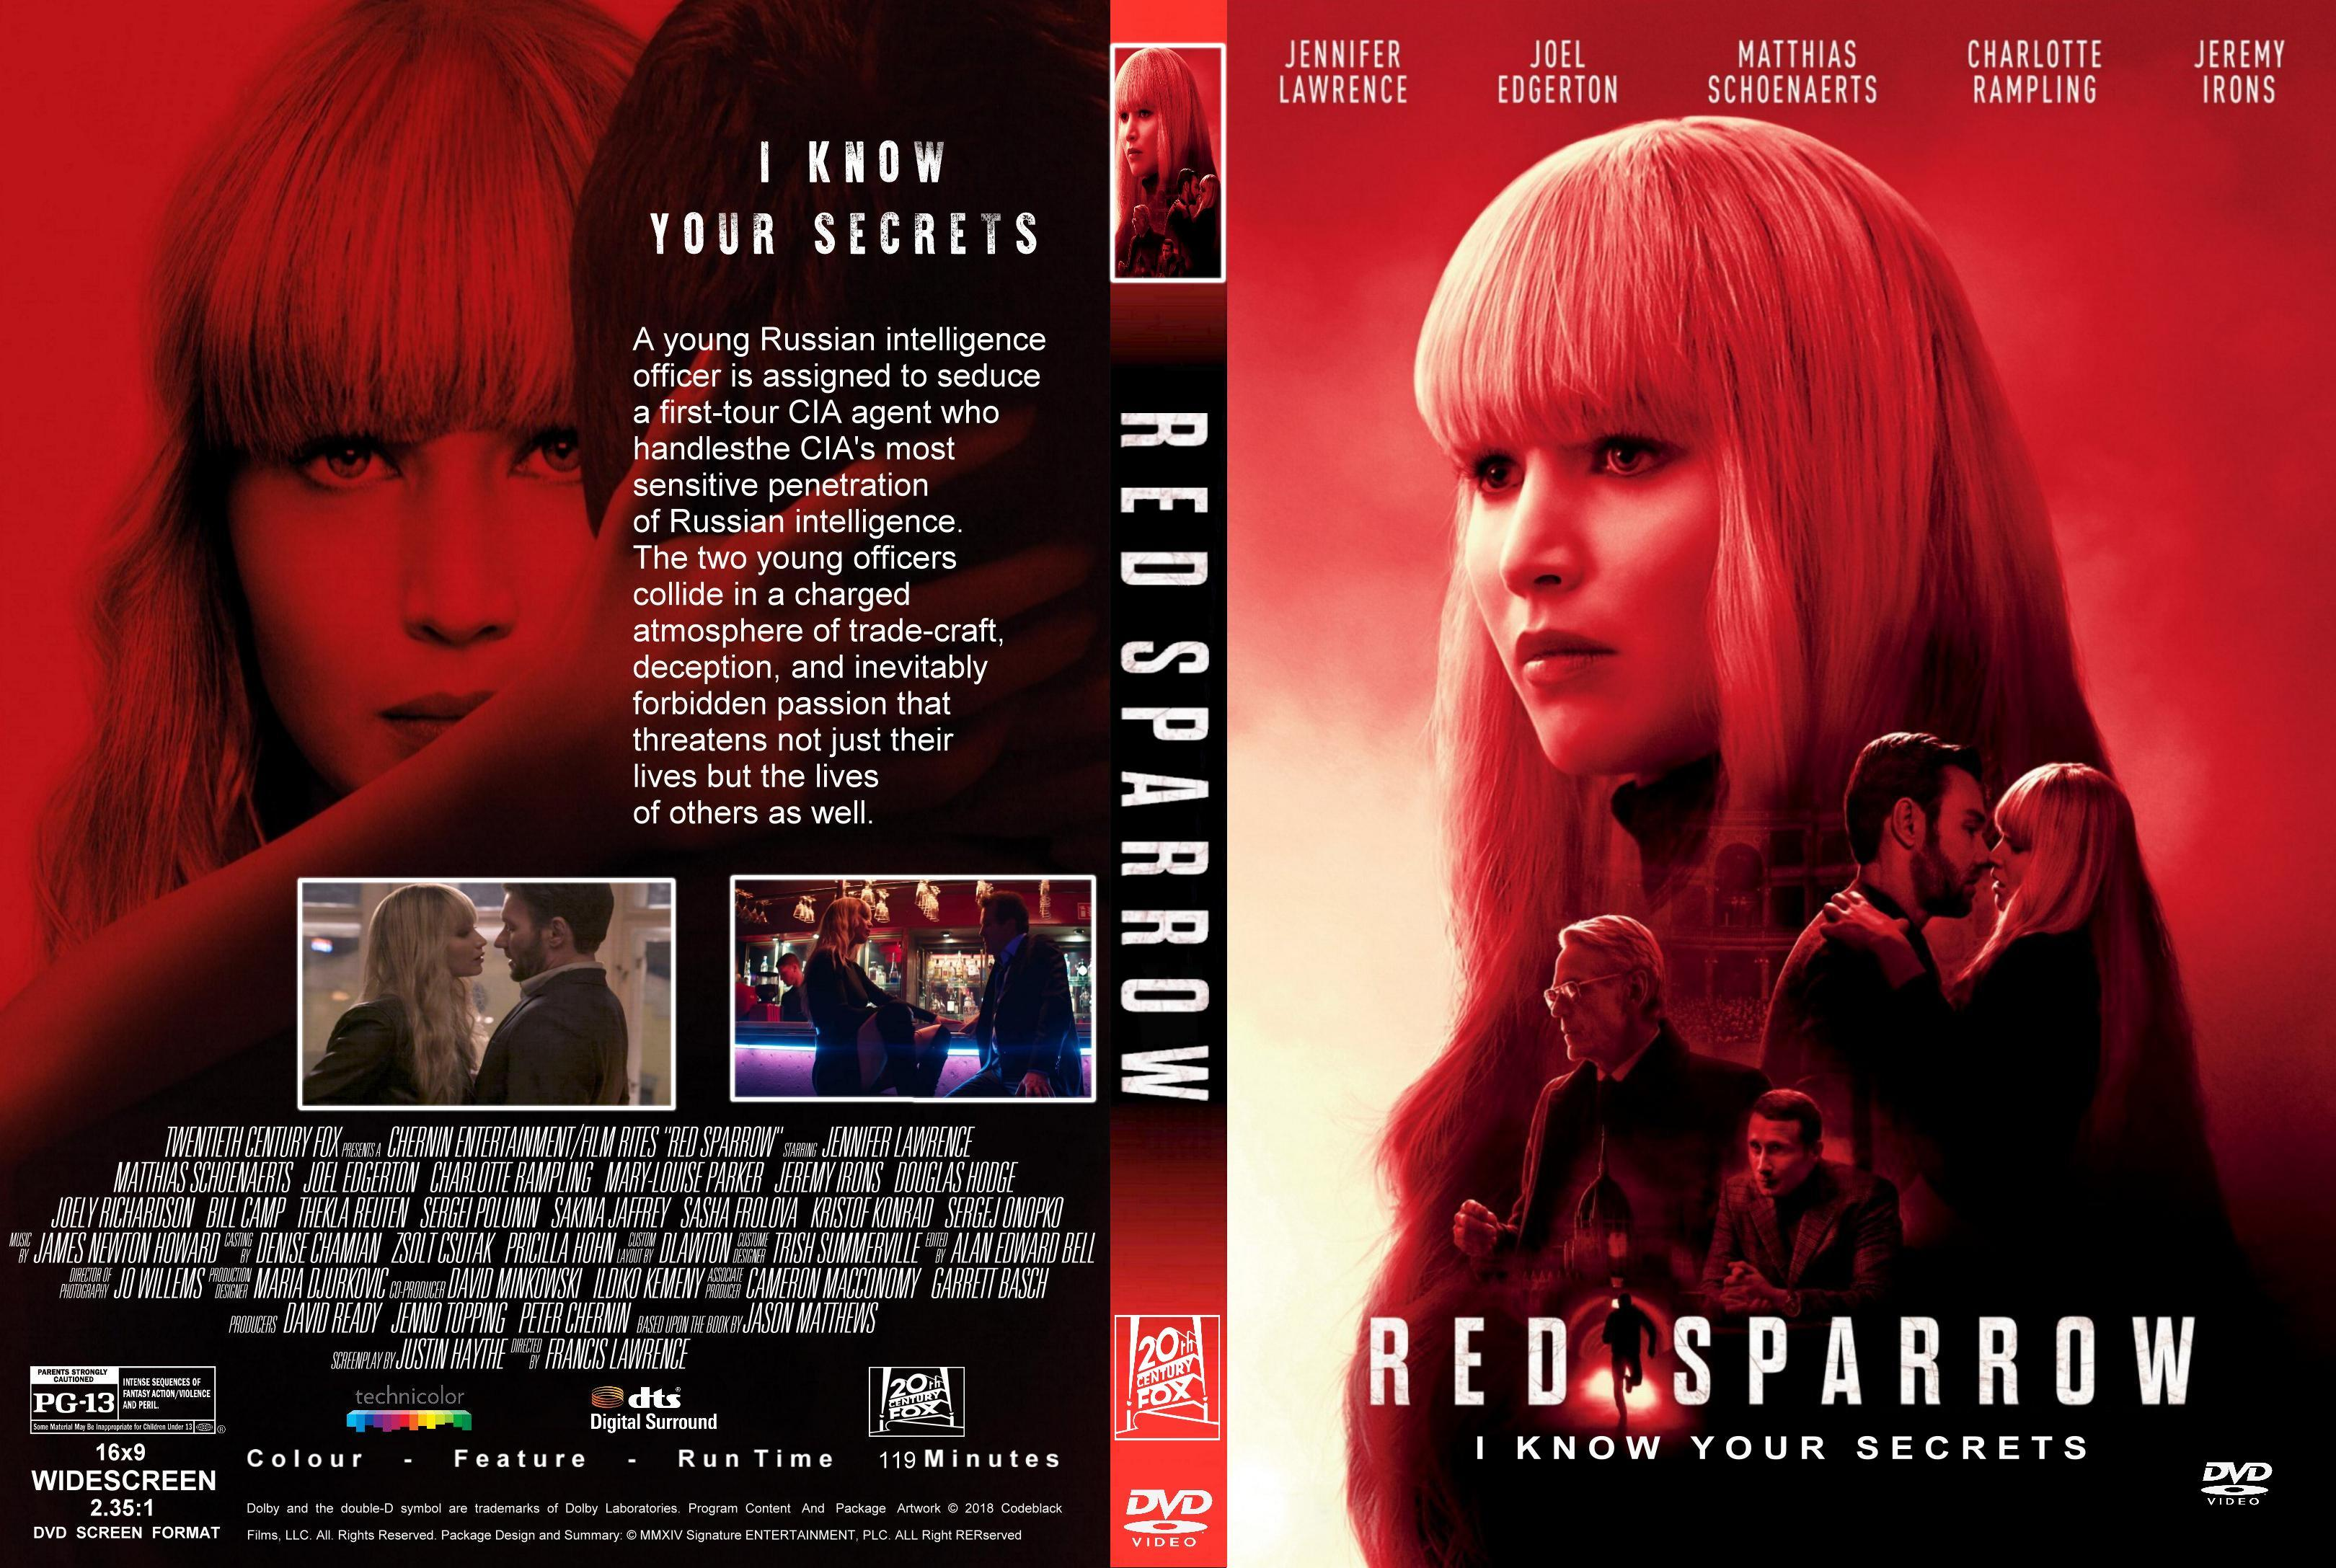 Red Sparrow (2018) : Front   DVD Covers   Cover Century   Over 500.000  Album Art covers for free